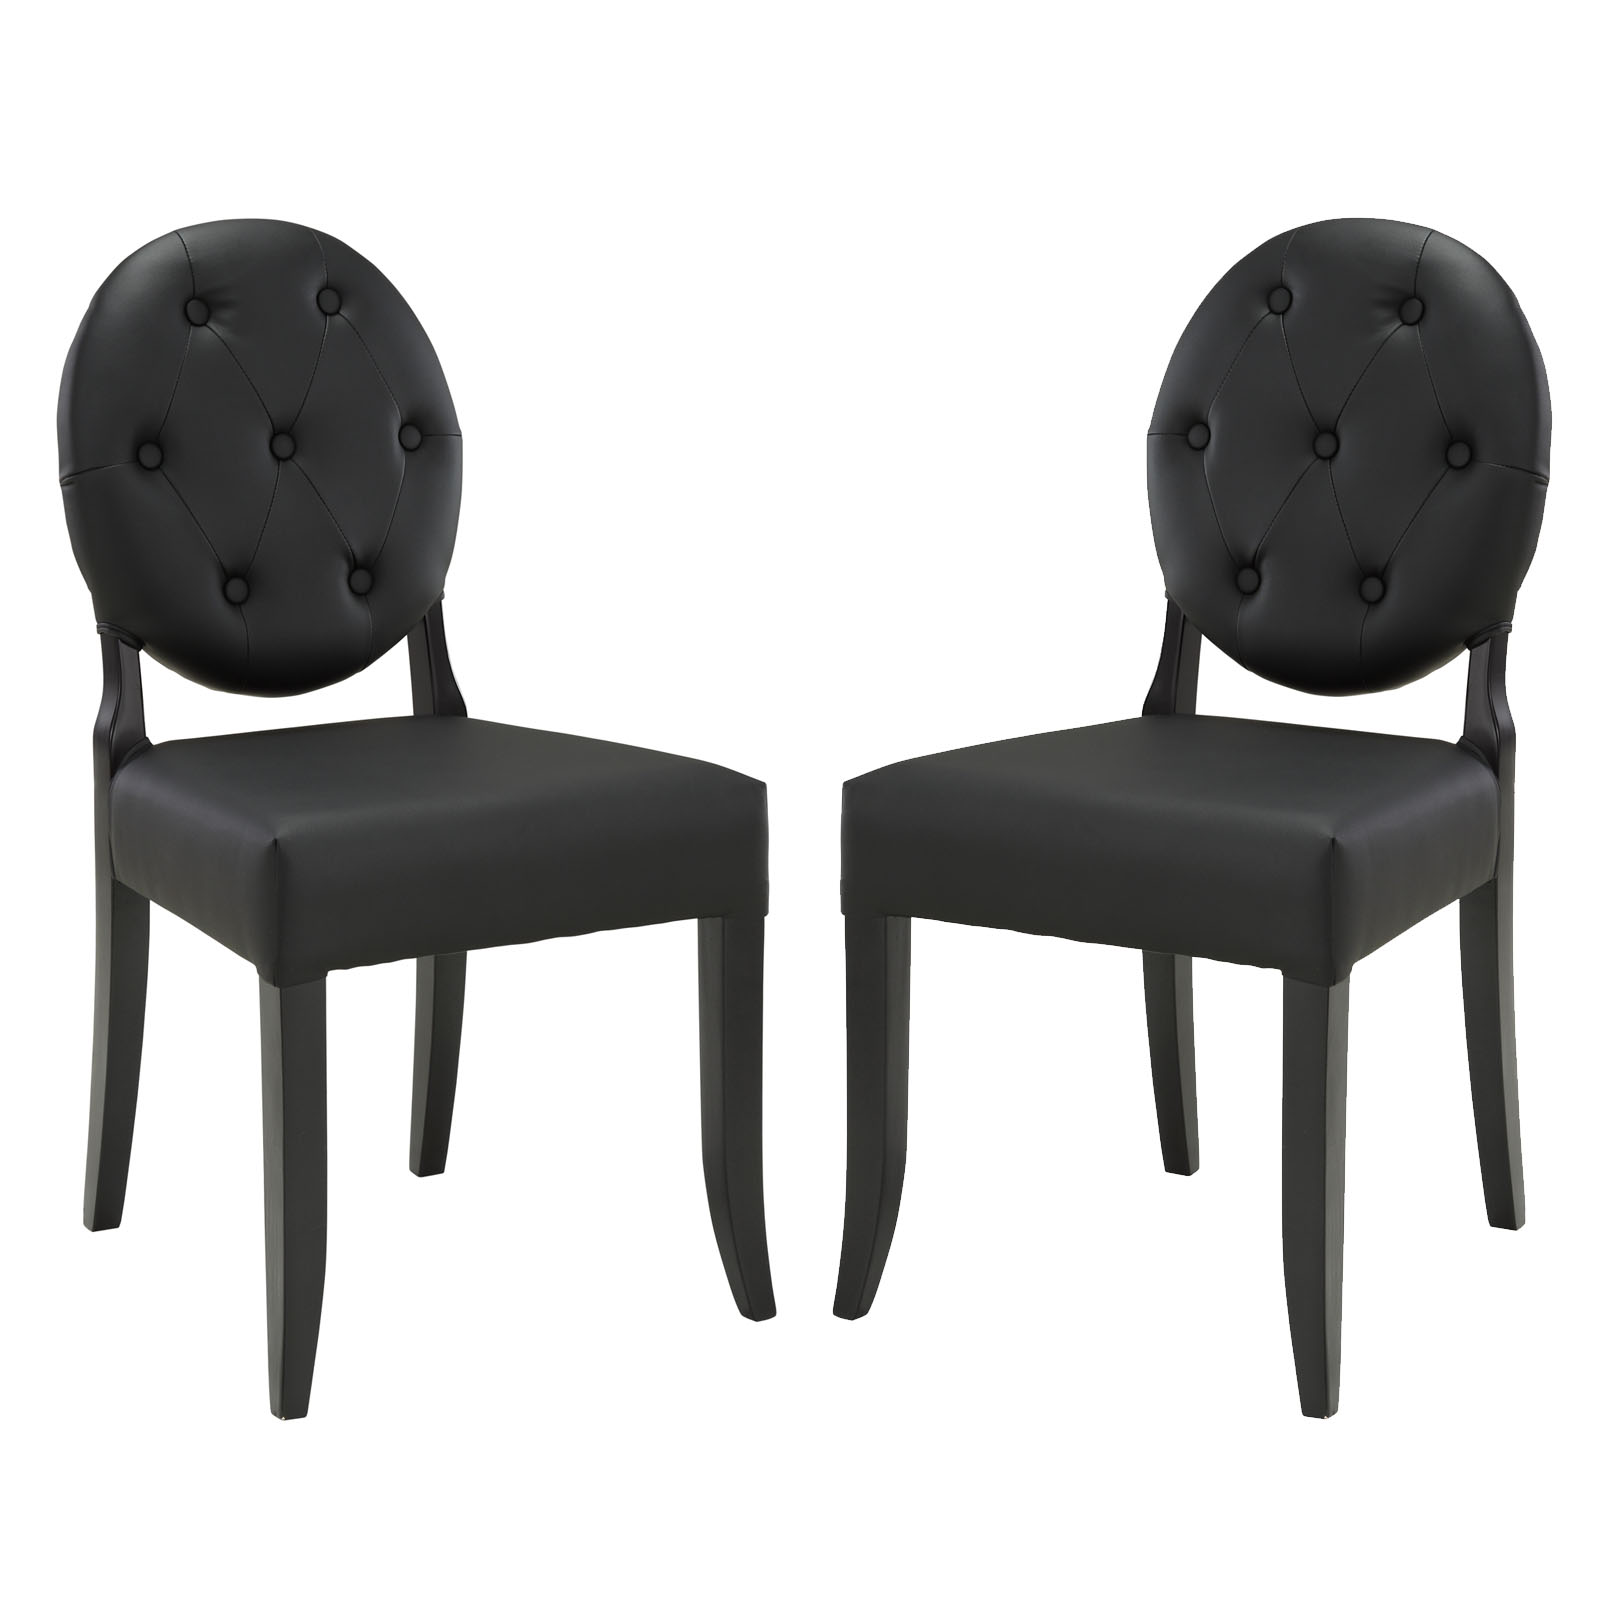 Modern Contemporary Kitchen Dining Side Chair Set of Two Black